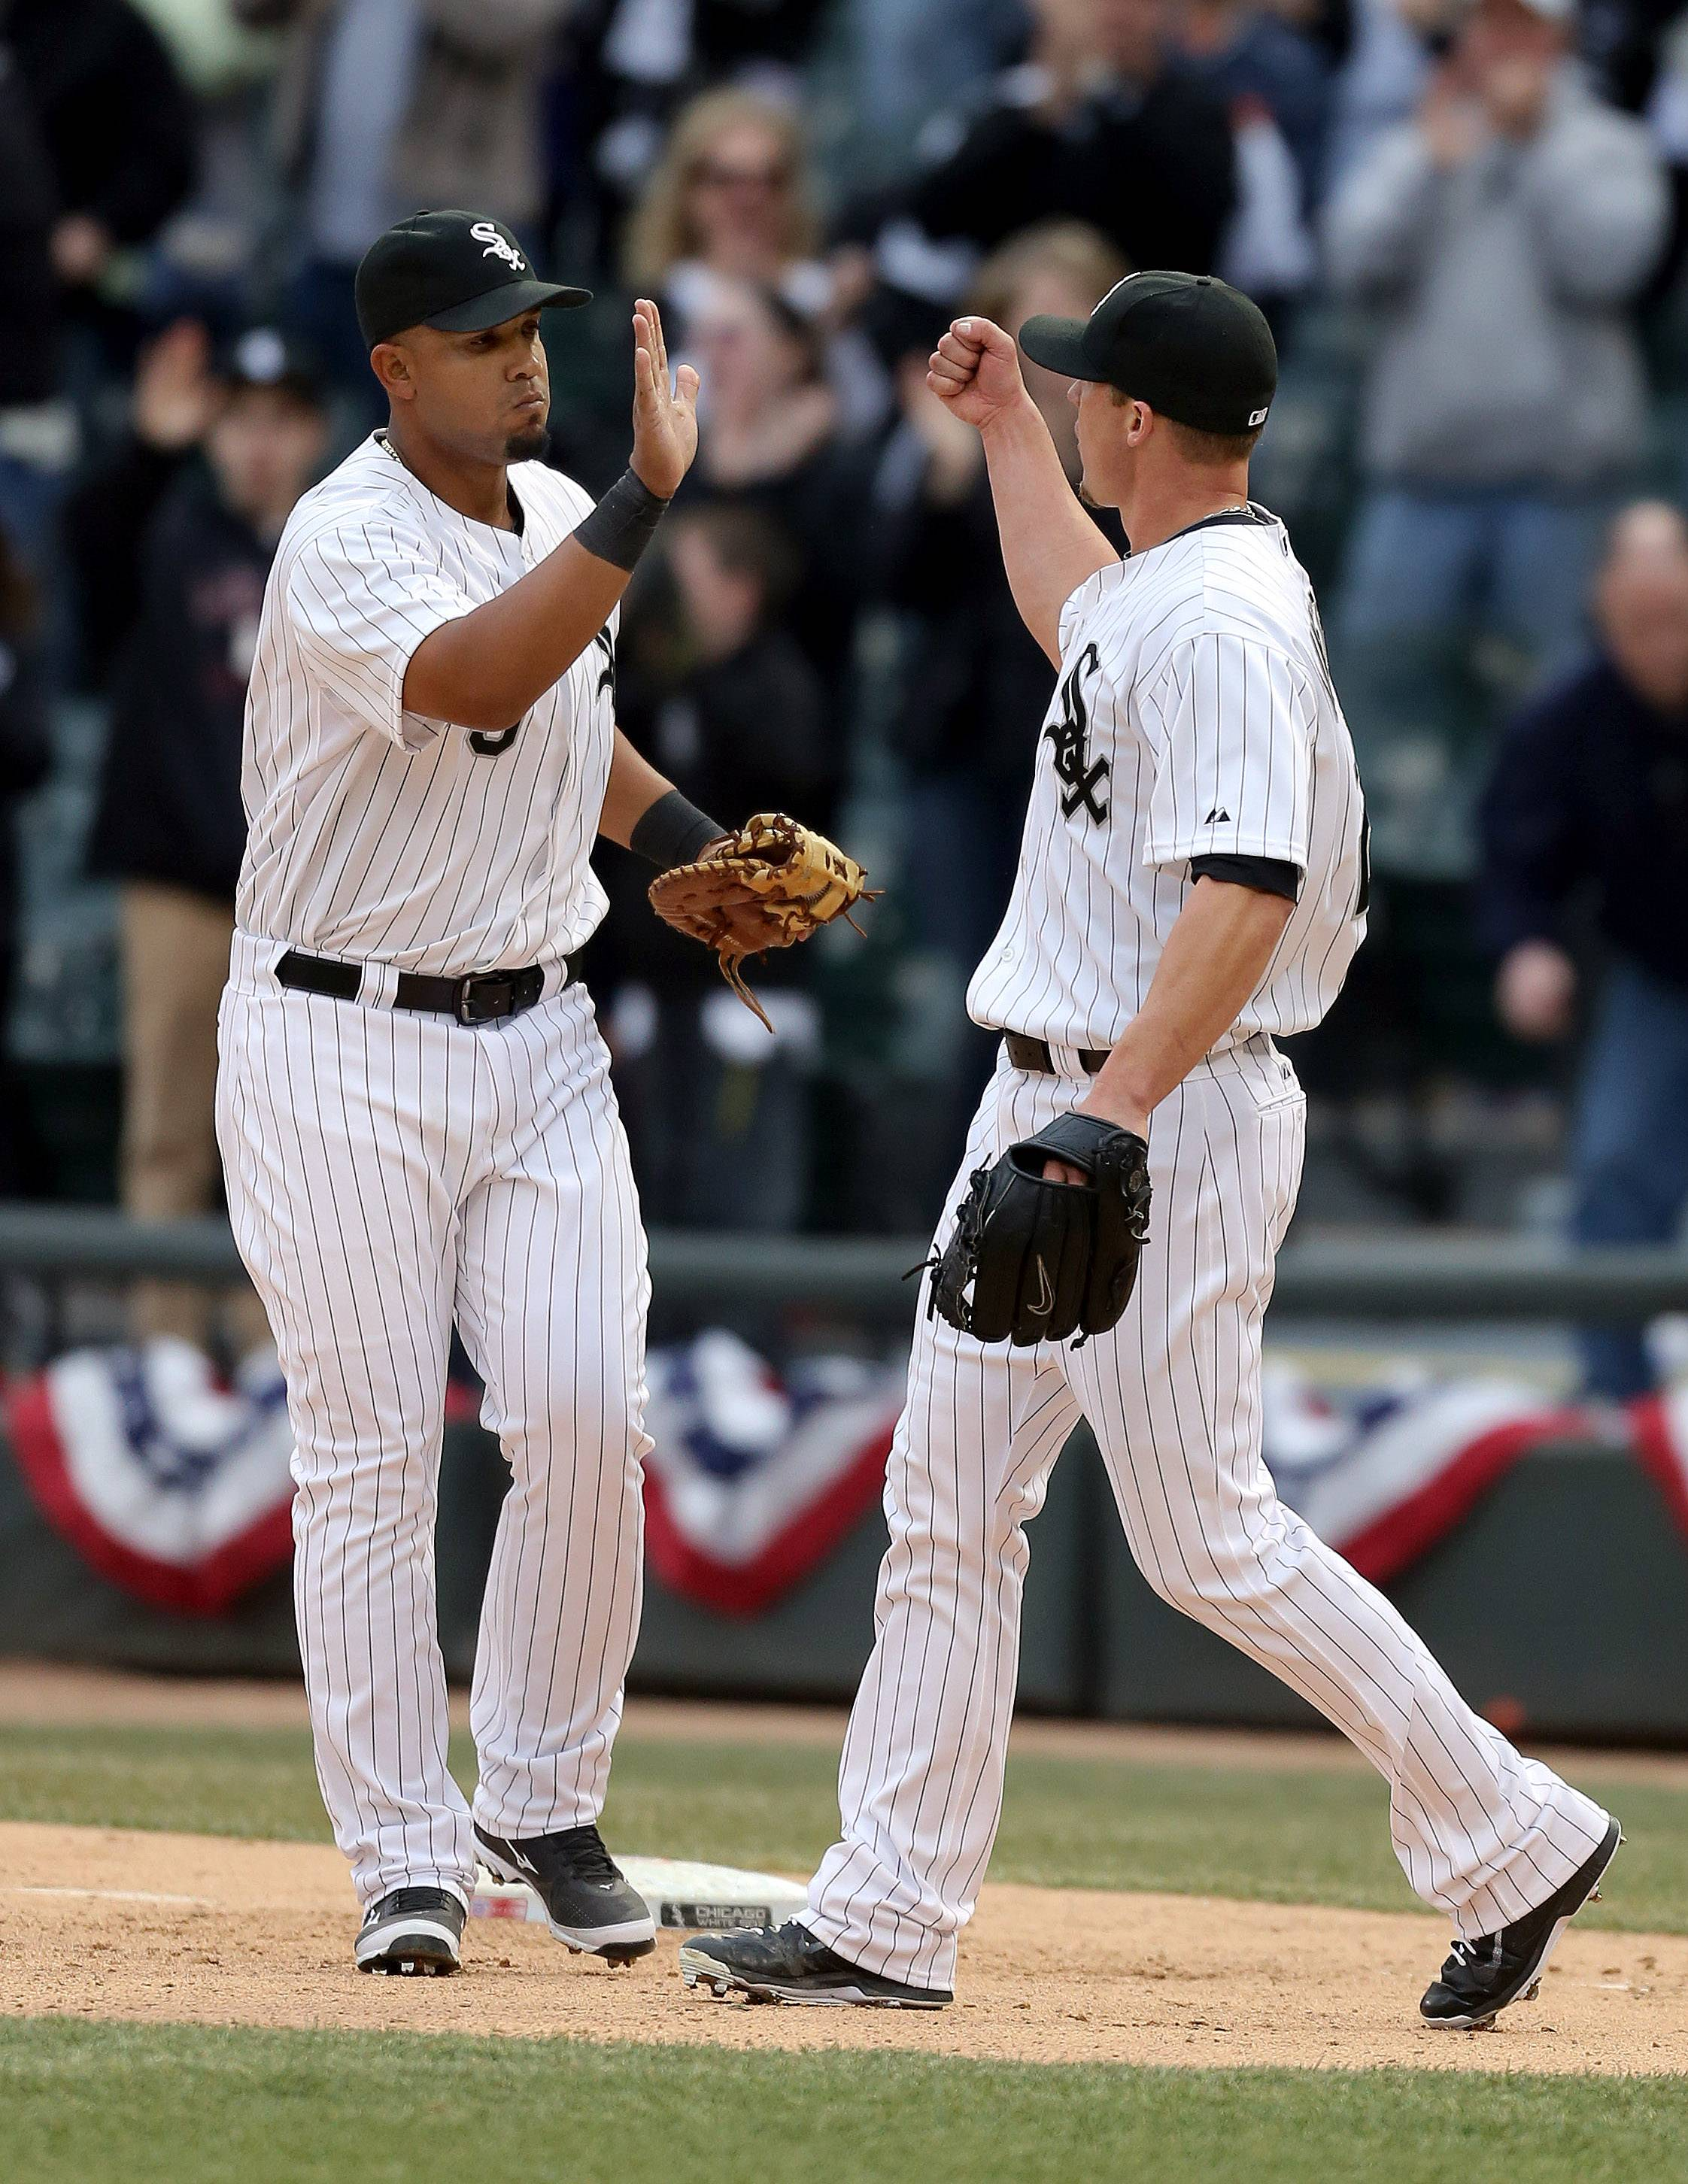 Chicago White Sox first baseman Jose Abreu high-fives relief pitcher Matt Lindstrom after the game.